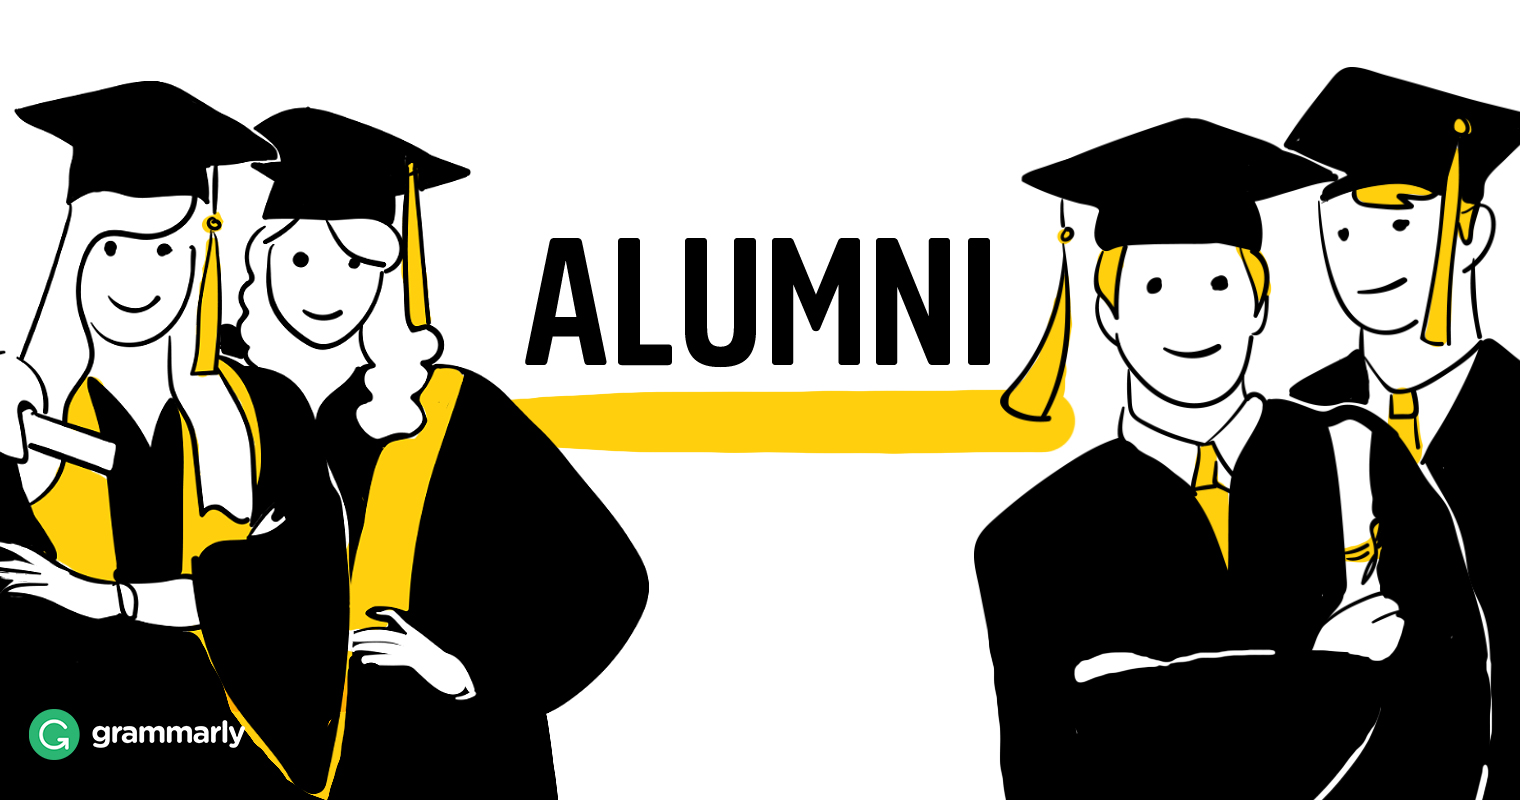 Alumni visual definition